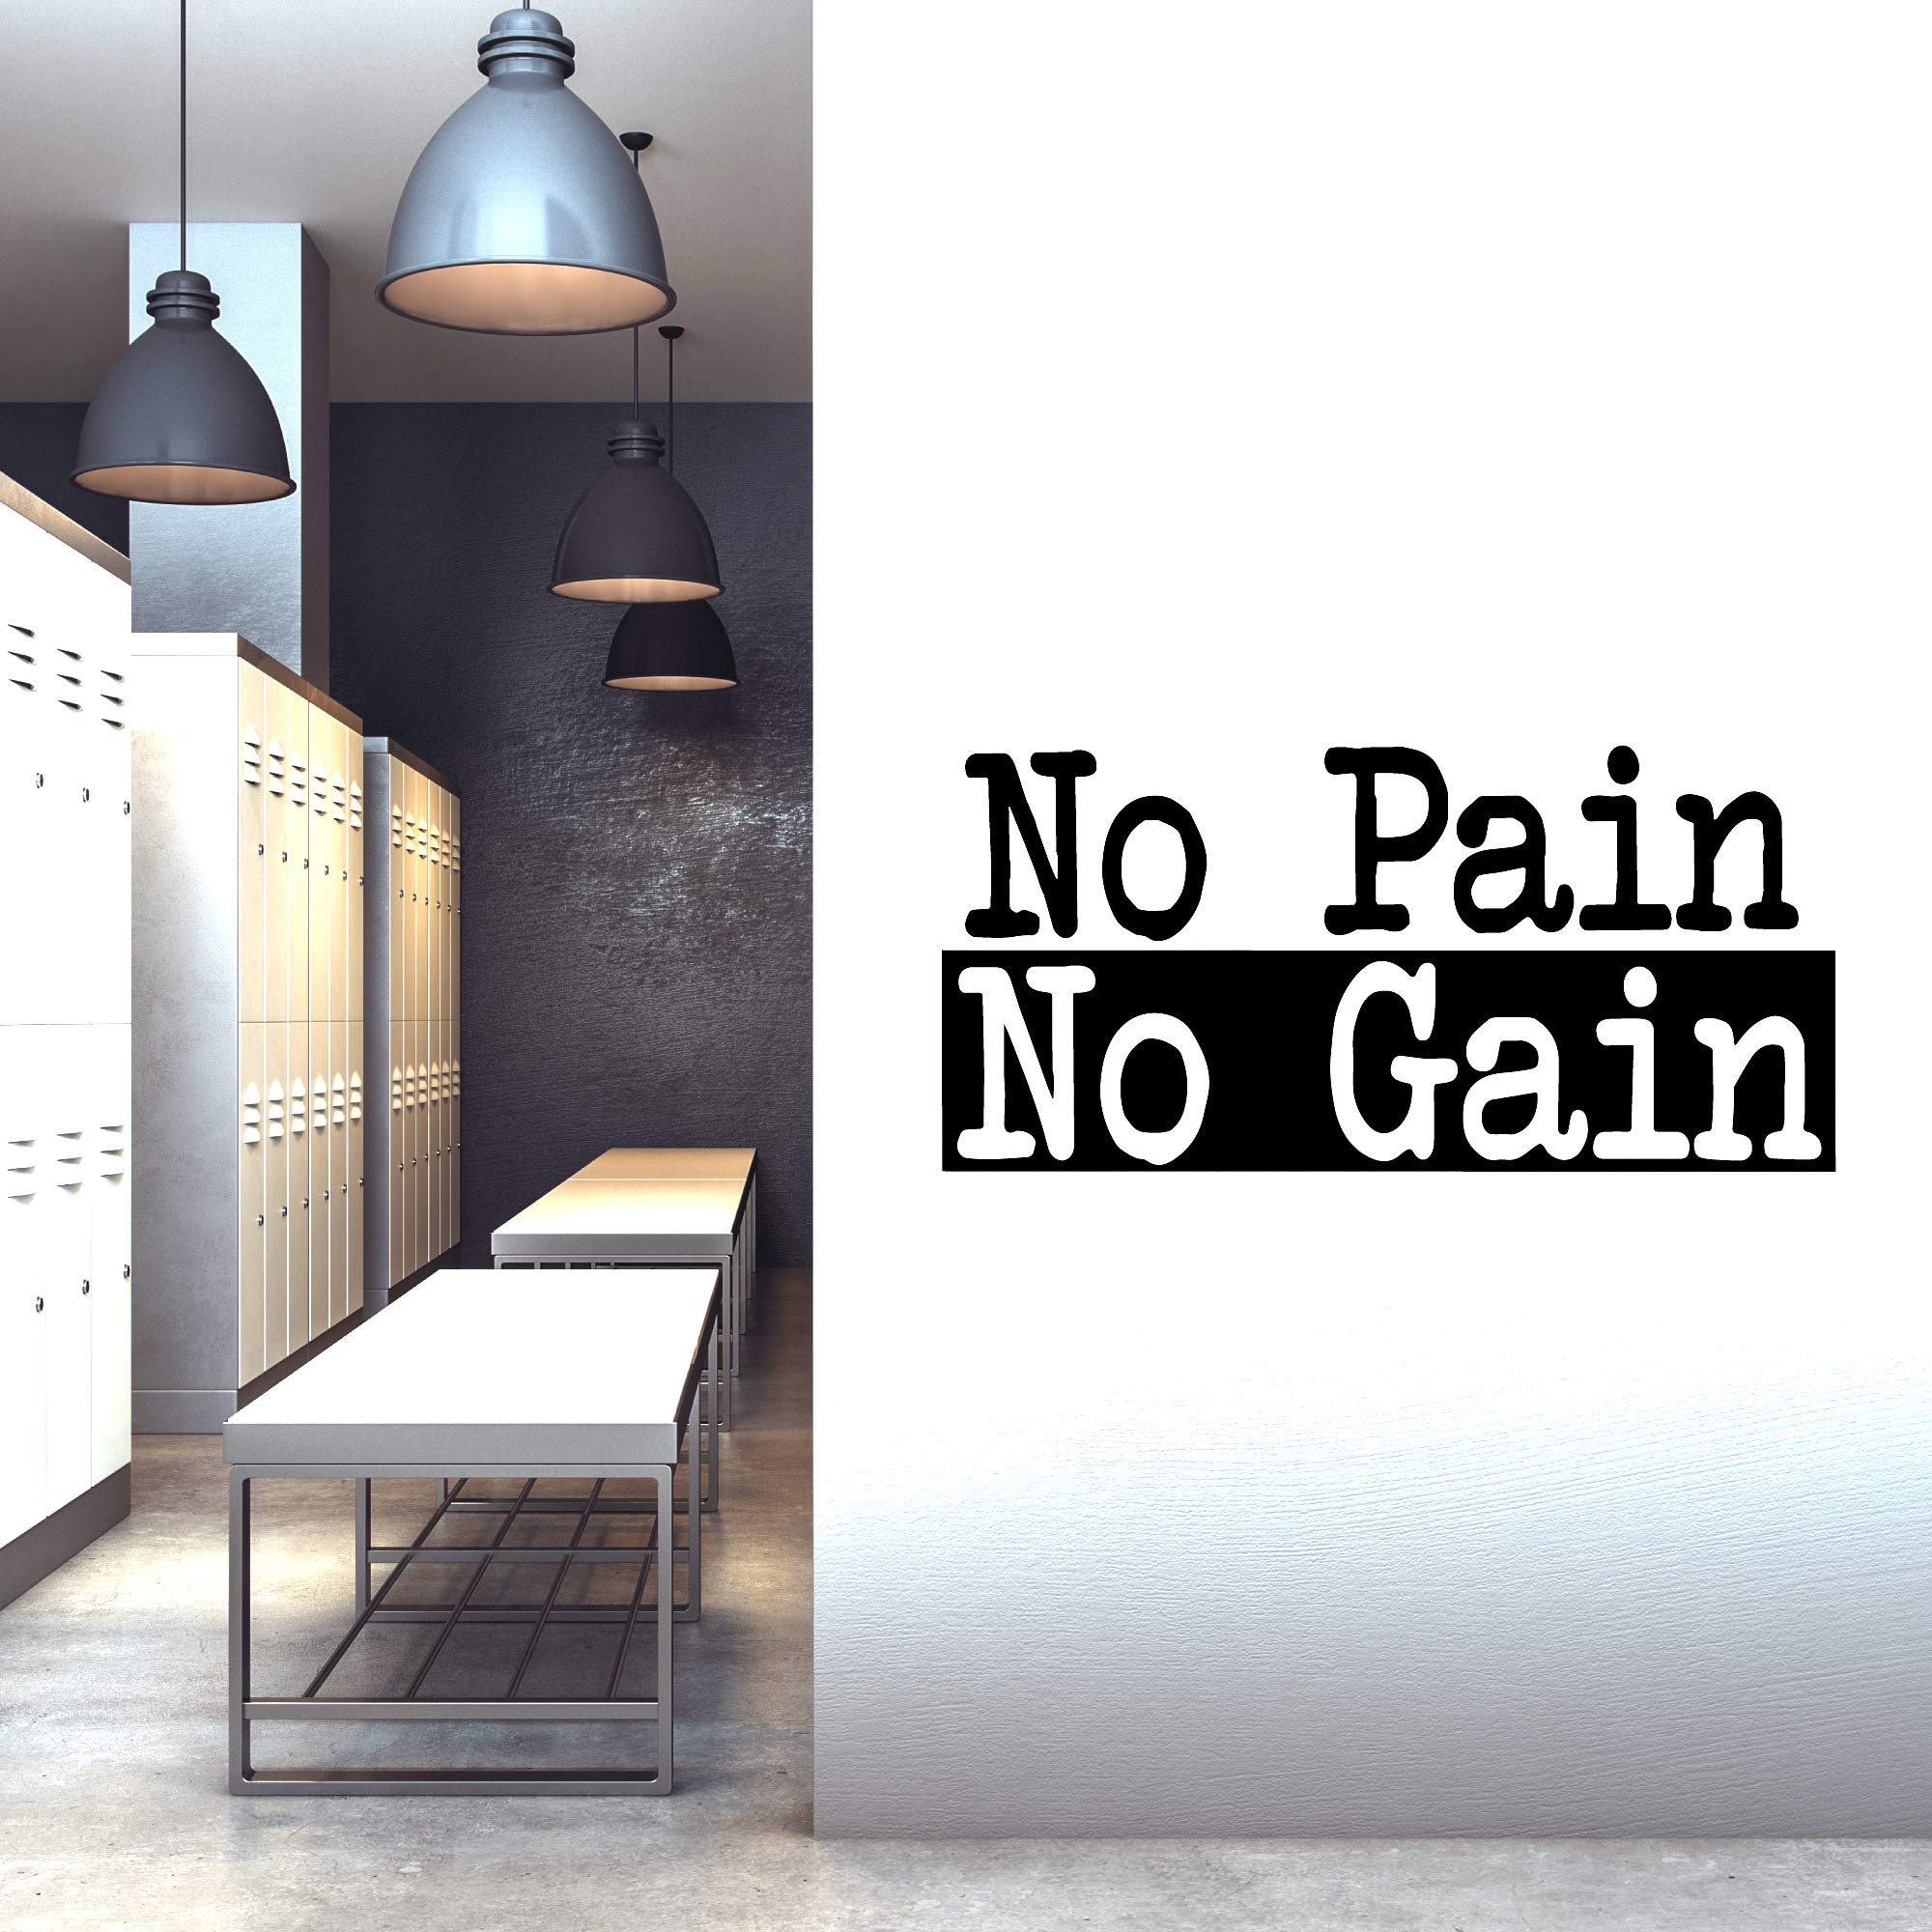 Extra Large Gym Wall Decal | No Pain No Gain Inspirational Wall Sticker Quote | 2 ft x 4 ft HUGE Wall Art Decoration | Big Vinyl Lettering Motivation for the Home Gym | Workout Exercise Sign by CrafteLife (Image #3)